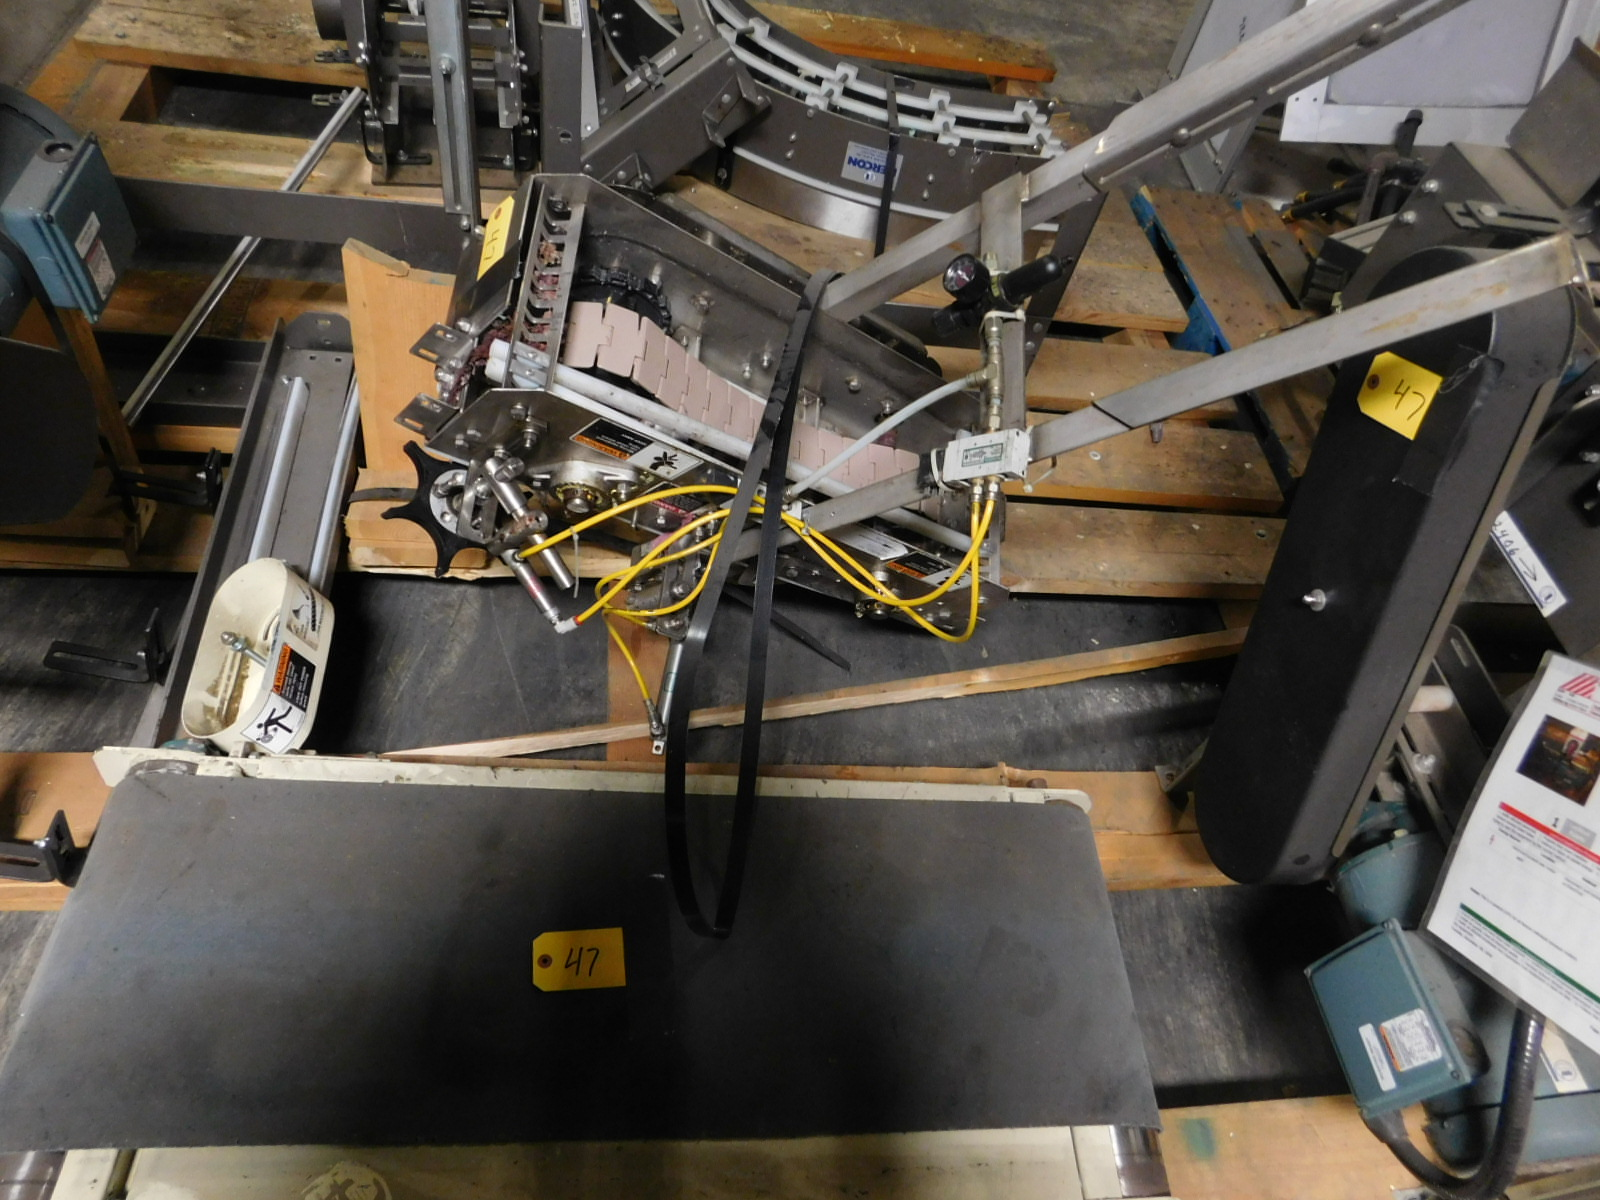 Lot 47 - Nercon Motorized lot of Conveyor' Stainless Steel construction parts :equipment located at Clark